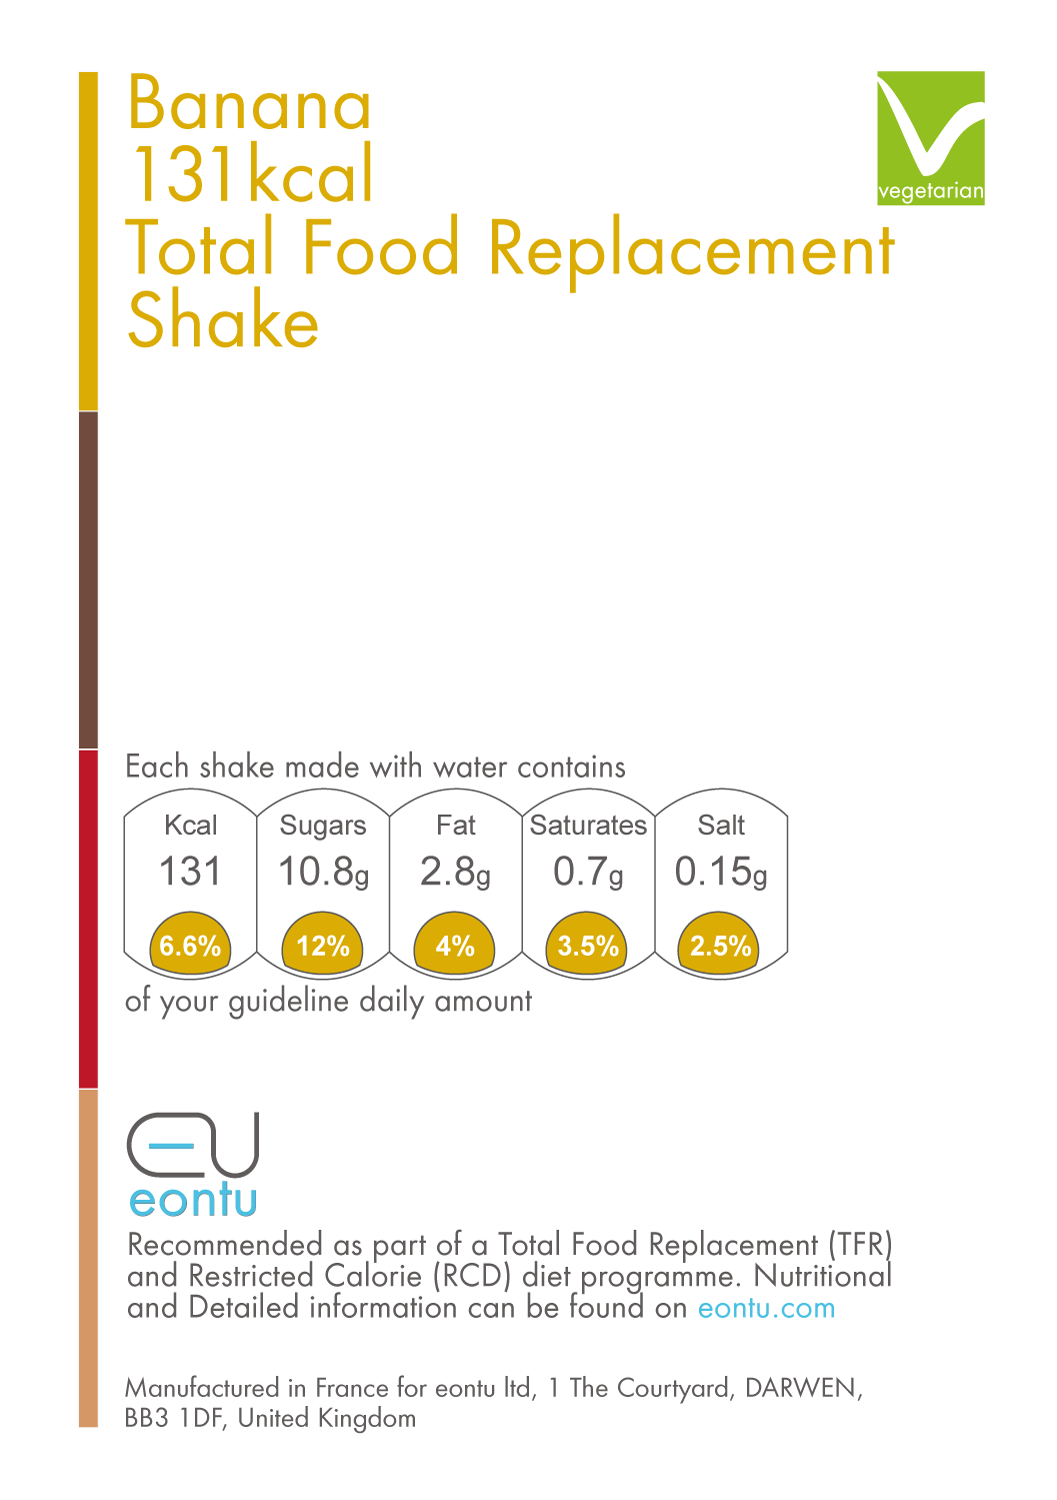 Banana Total Food Replacement Shake (131/218kcal)